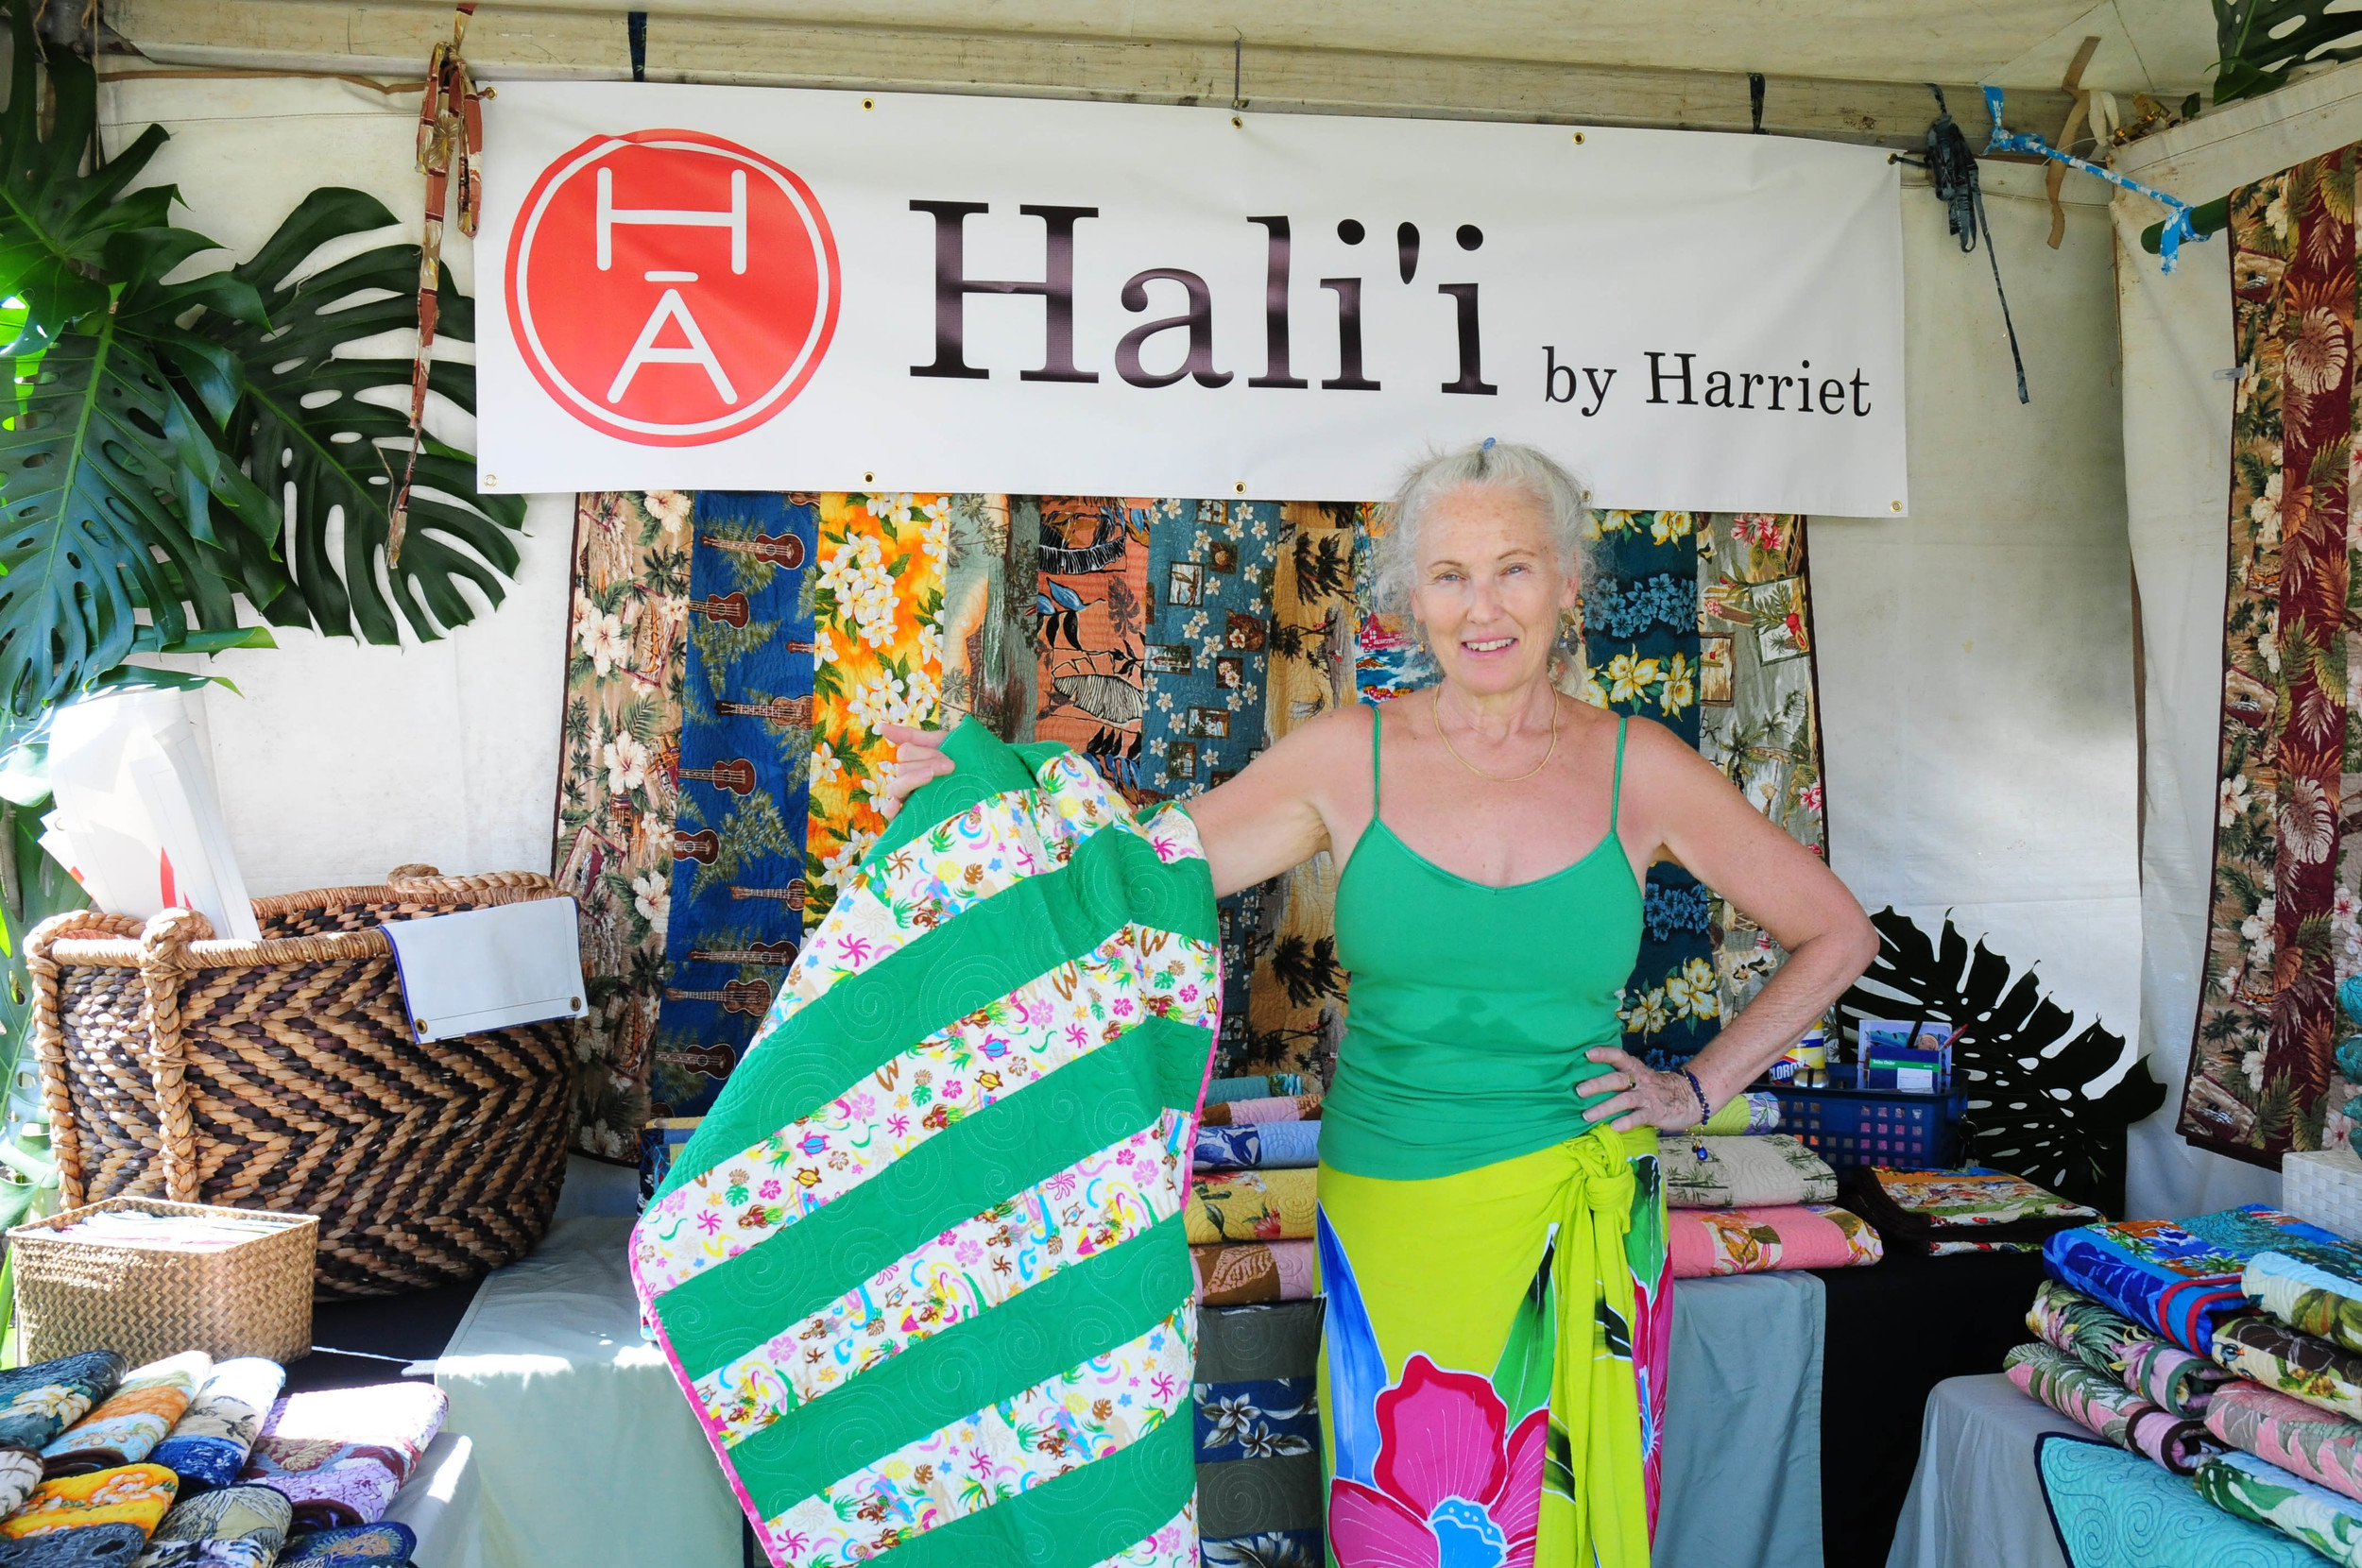 """The Made in Maui County Festival provided me with an opportunity to participate in a first-class show and marketing event that is not available on this scale for a small business.""     - Harriet Alms, Hali`i by Harriet"